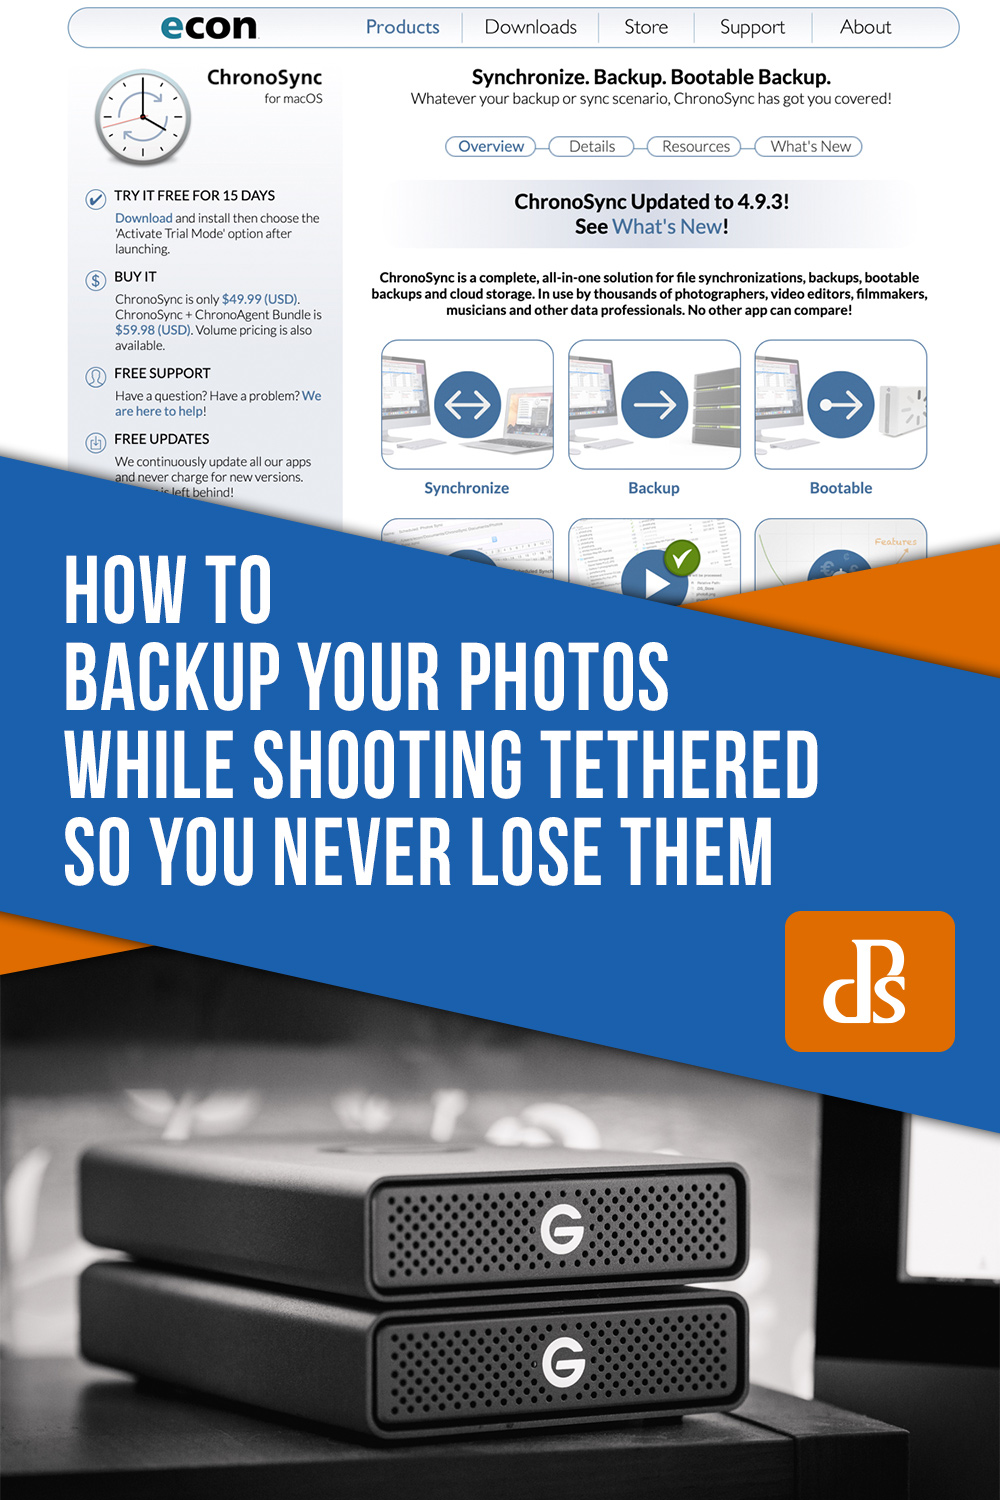 how-to-backup-your-photos-while-shooting-tethered